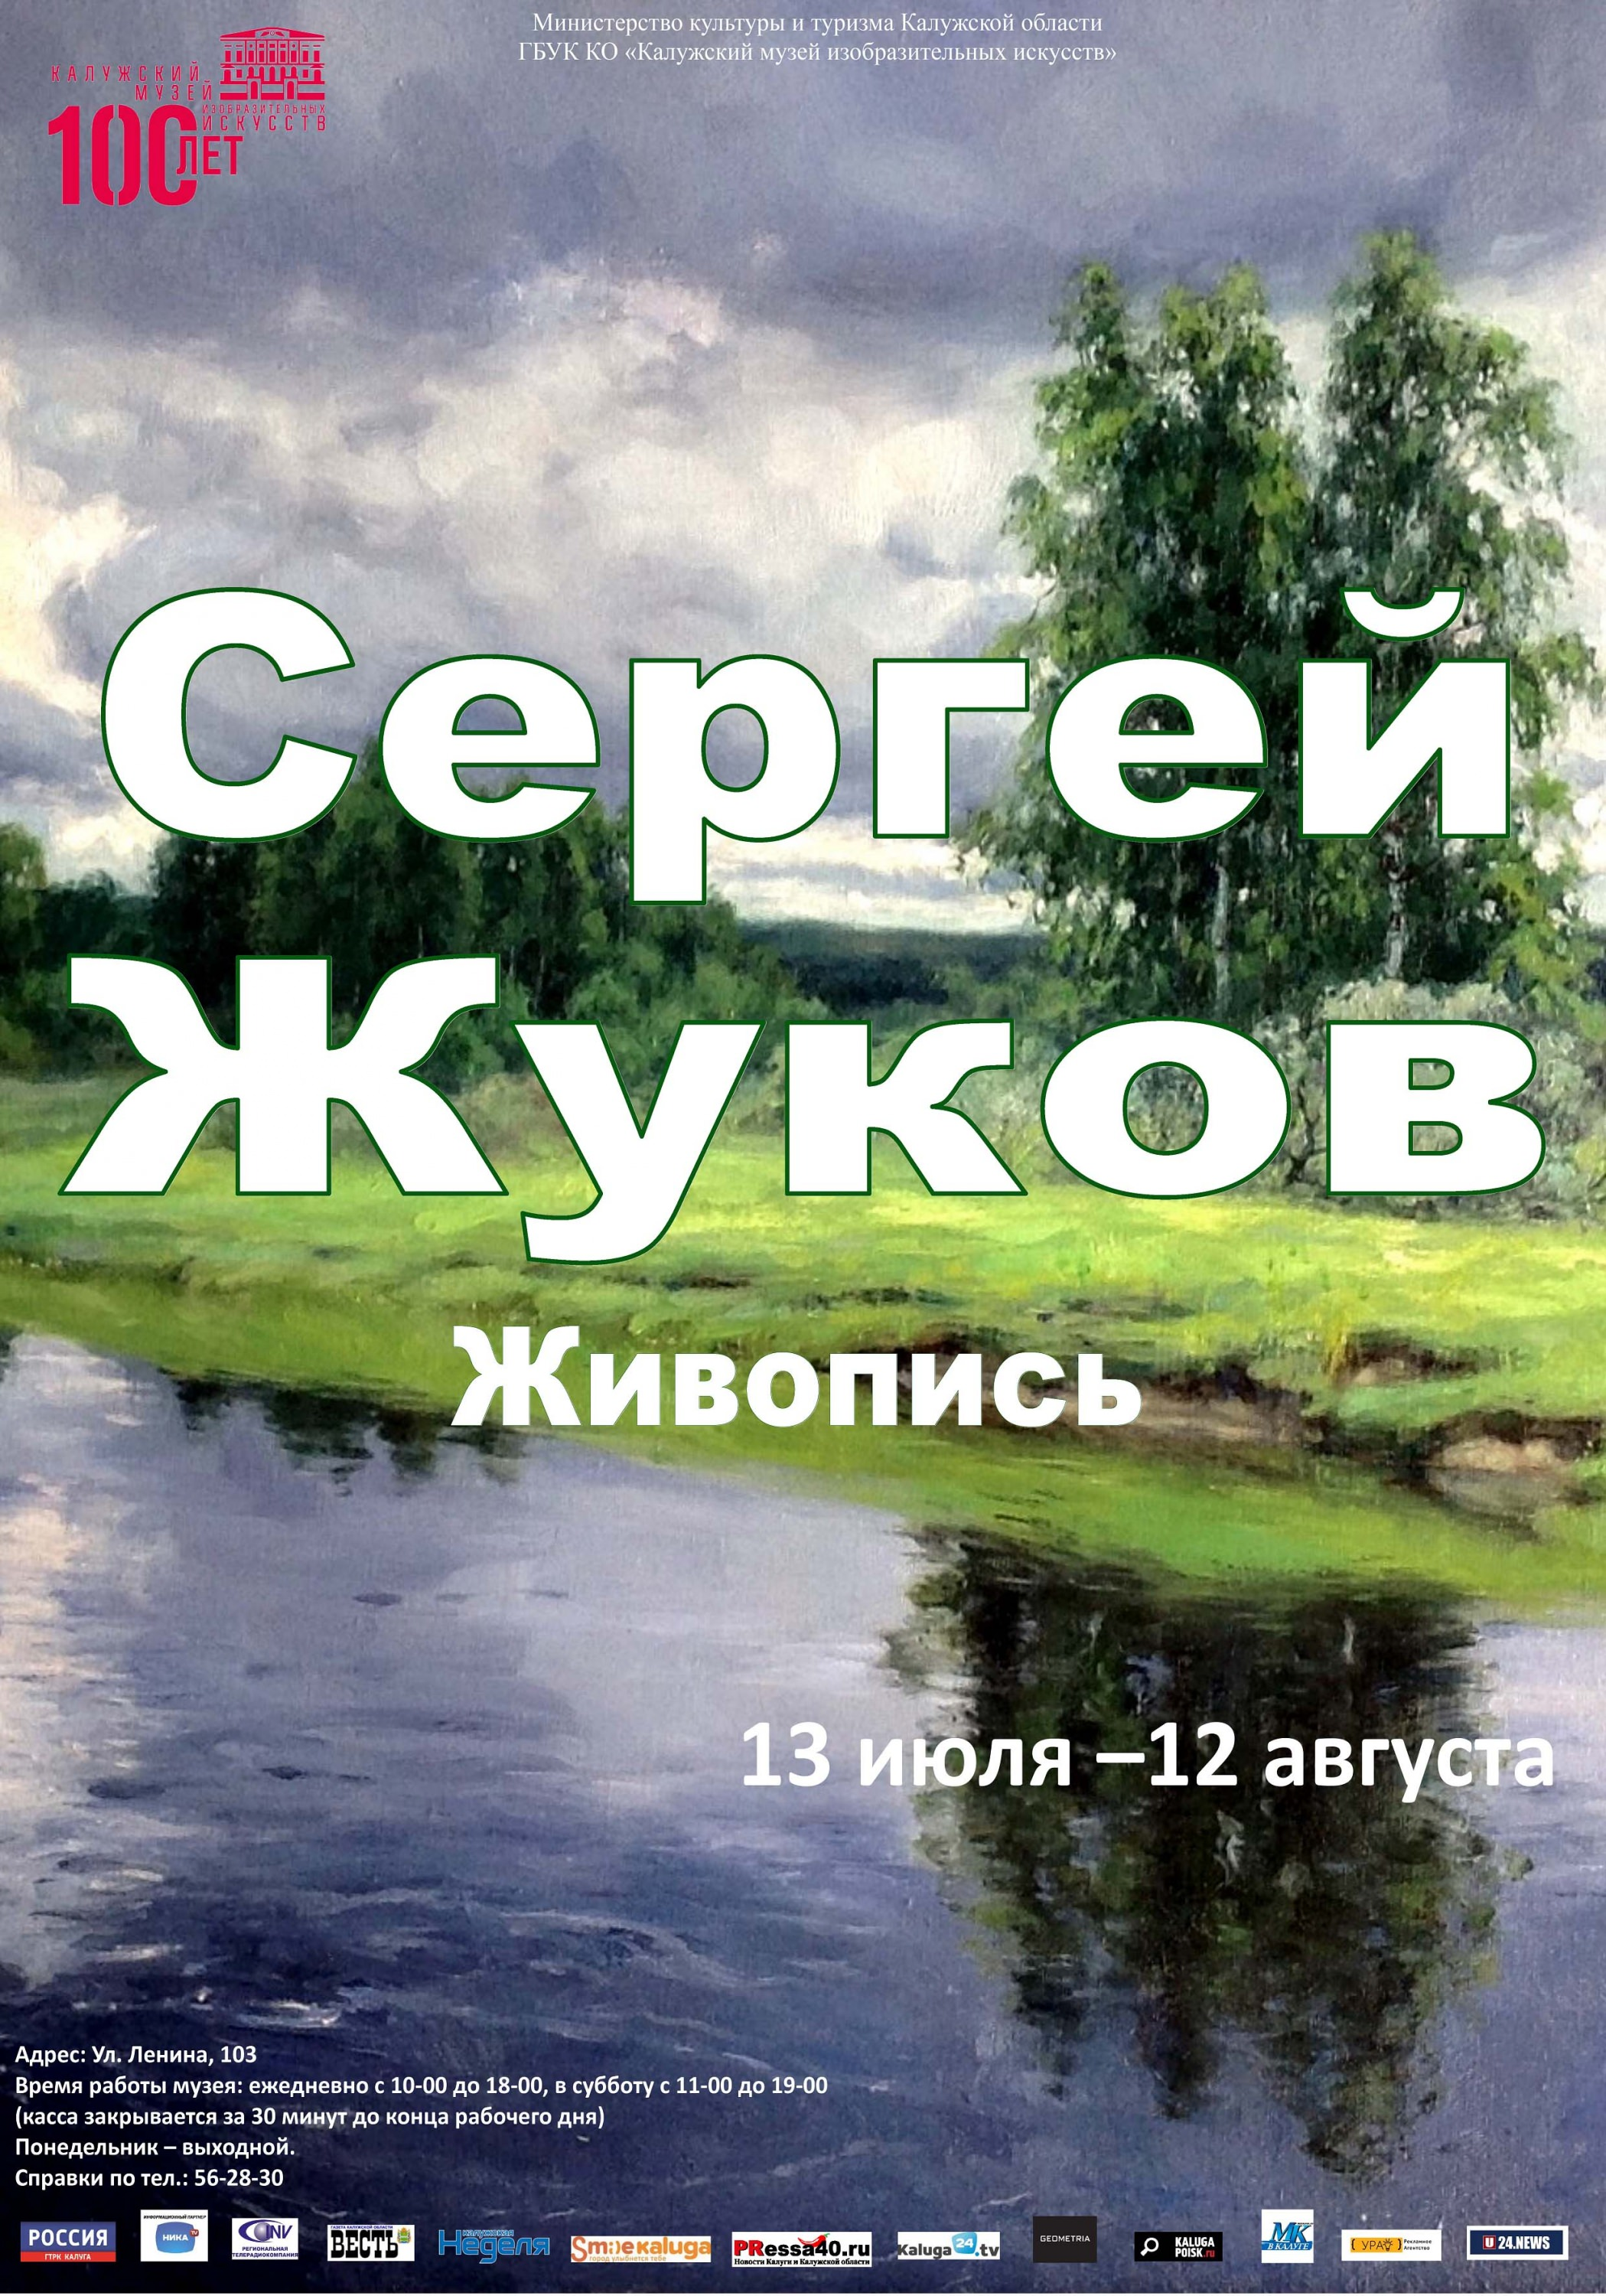 Exhibition of Sergei Zhukov. Painting